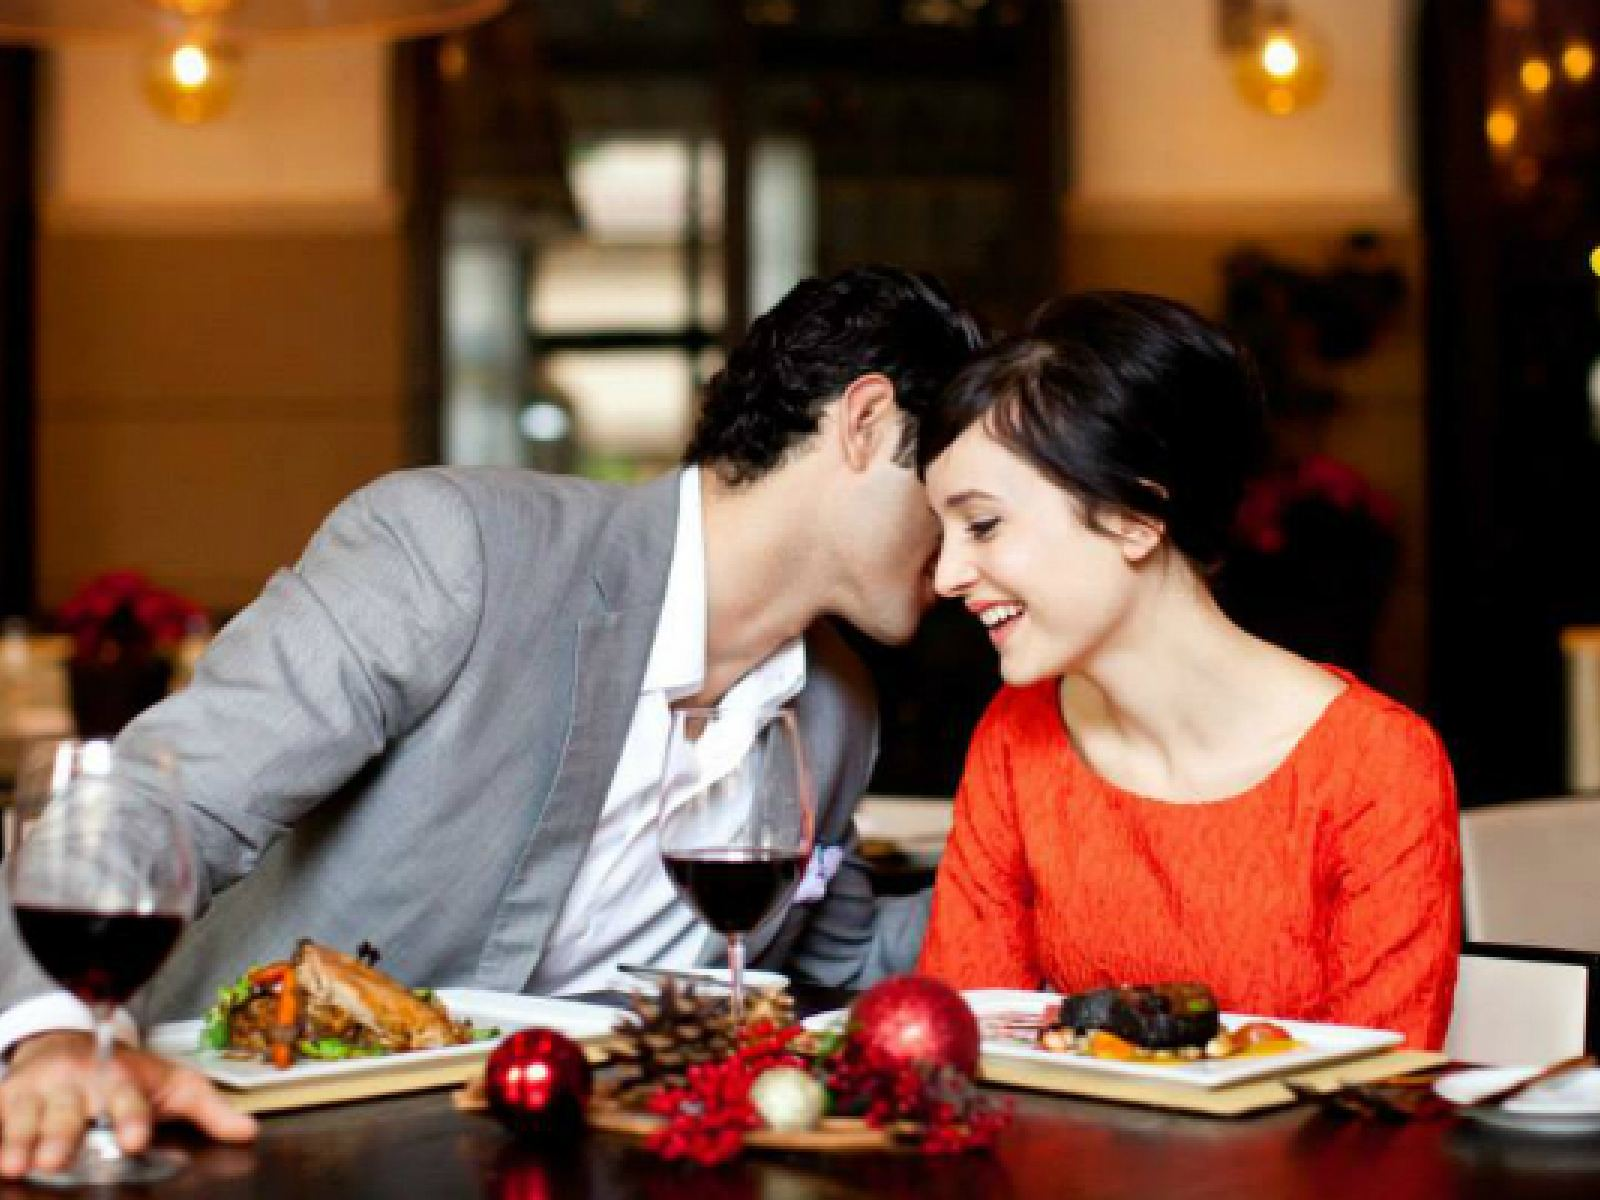 Main image for article titled Romantic Los Angeles Hotel Packages & Restaurant Specials